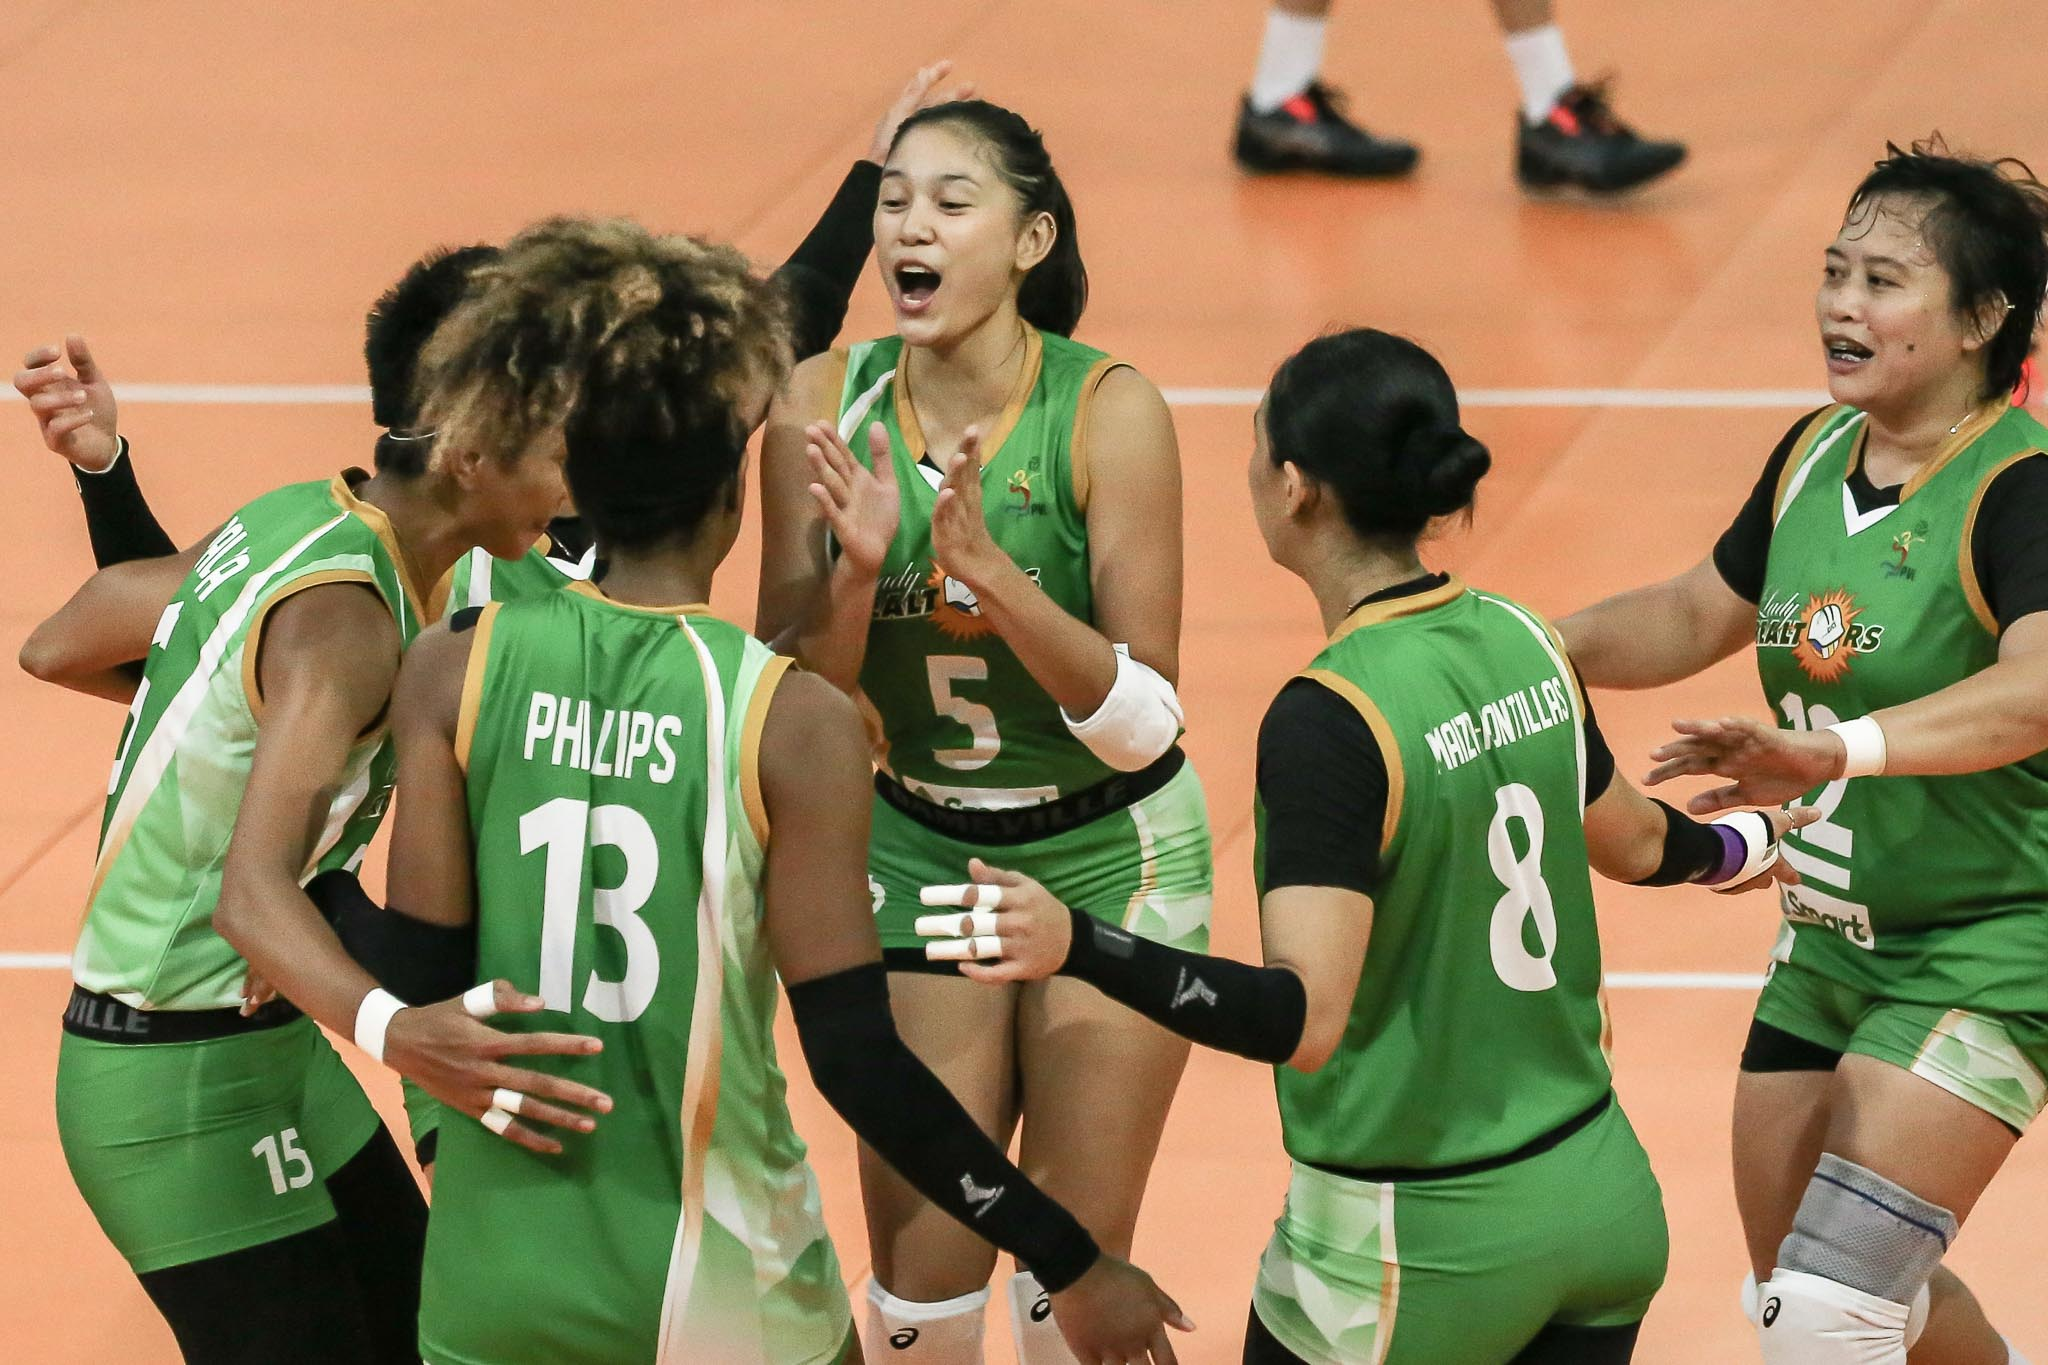 2021-PVL-Open-Conference-PLDT-vs-Sta.-Lucia-Mika-Reyes-x-Rubie-De-Leon Sta. Lucia made sure to utilize Reyes, Palomata vs PLDT News PVL Volleyball  - philippine sports news